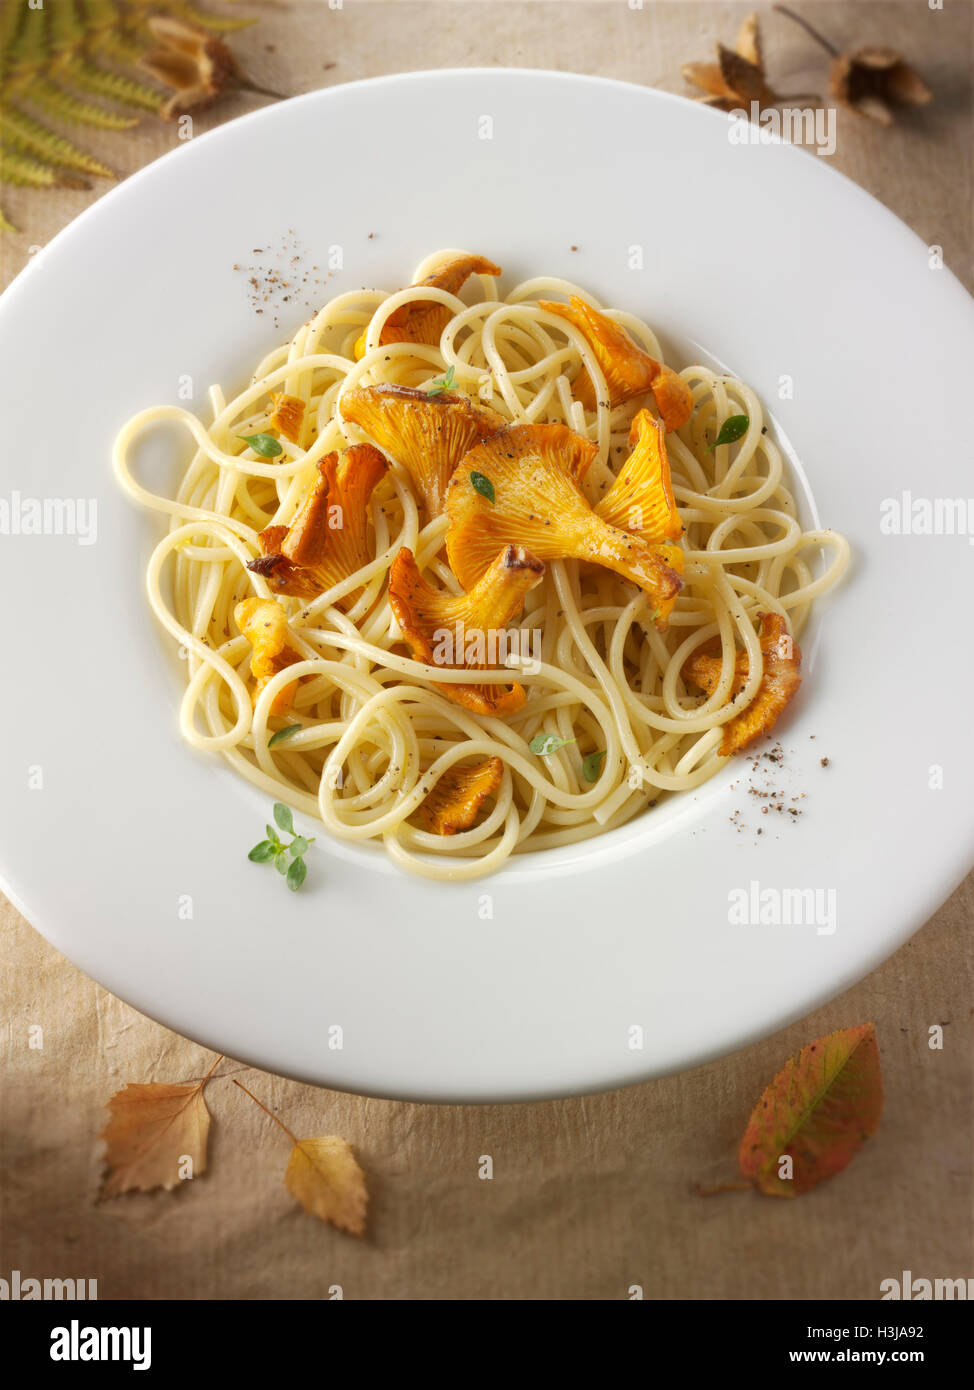 Wiild organic chanterelle or girolle Mushrooms (Cantharellus cibarius) or sauteed in butter and hebs with spaghetti - Stock Image